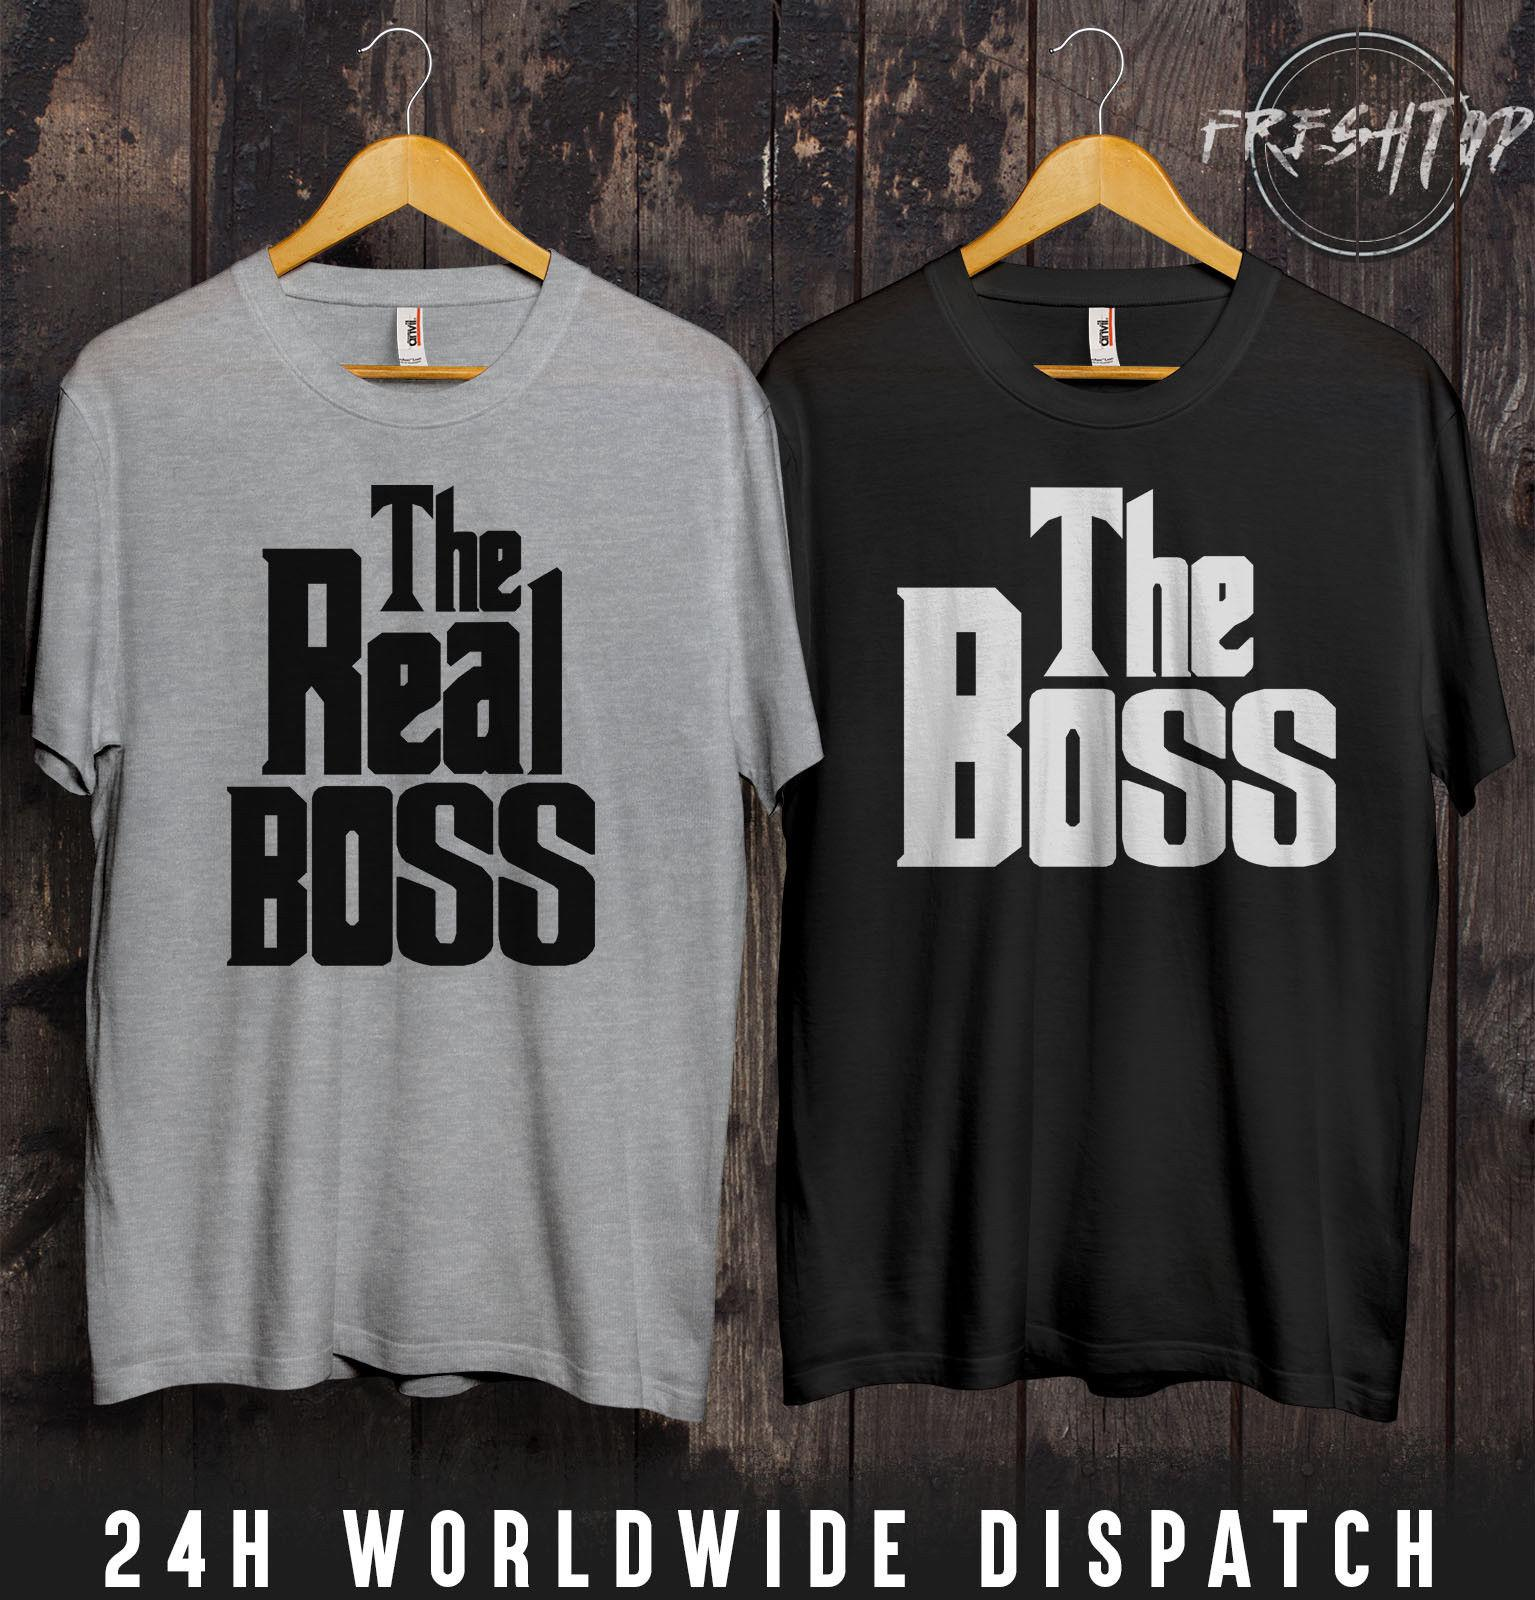 1f4351ebc The Boss Real Boss T Shirt Valentines Day Couple Married Holiday Couple  Matching Funny 100% Cotton T Shirt Awesome Tee Different T Shirts From  Qqq614445917, ...